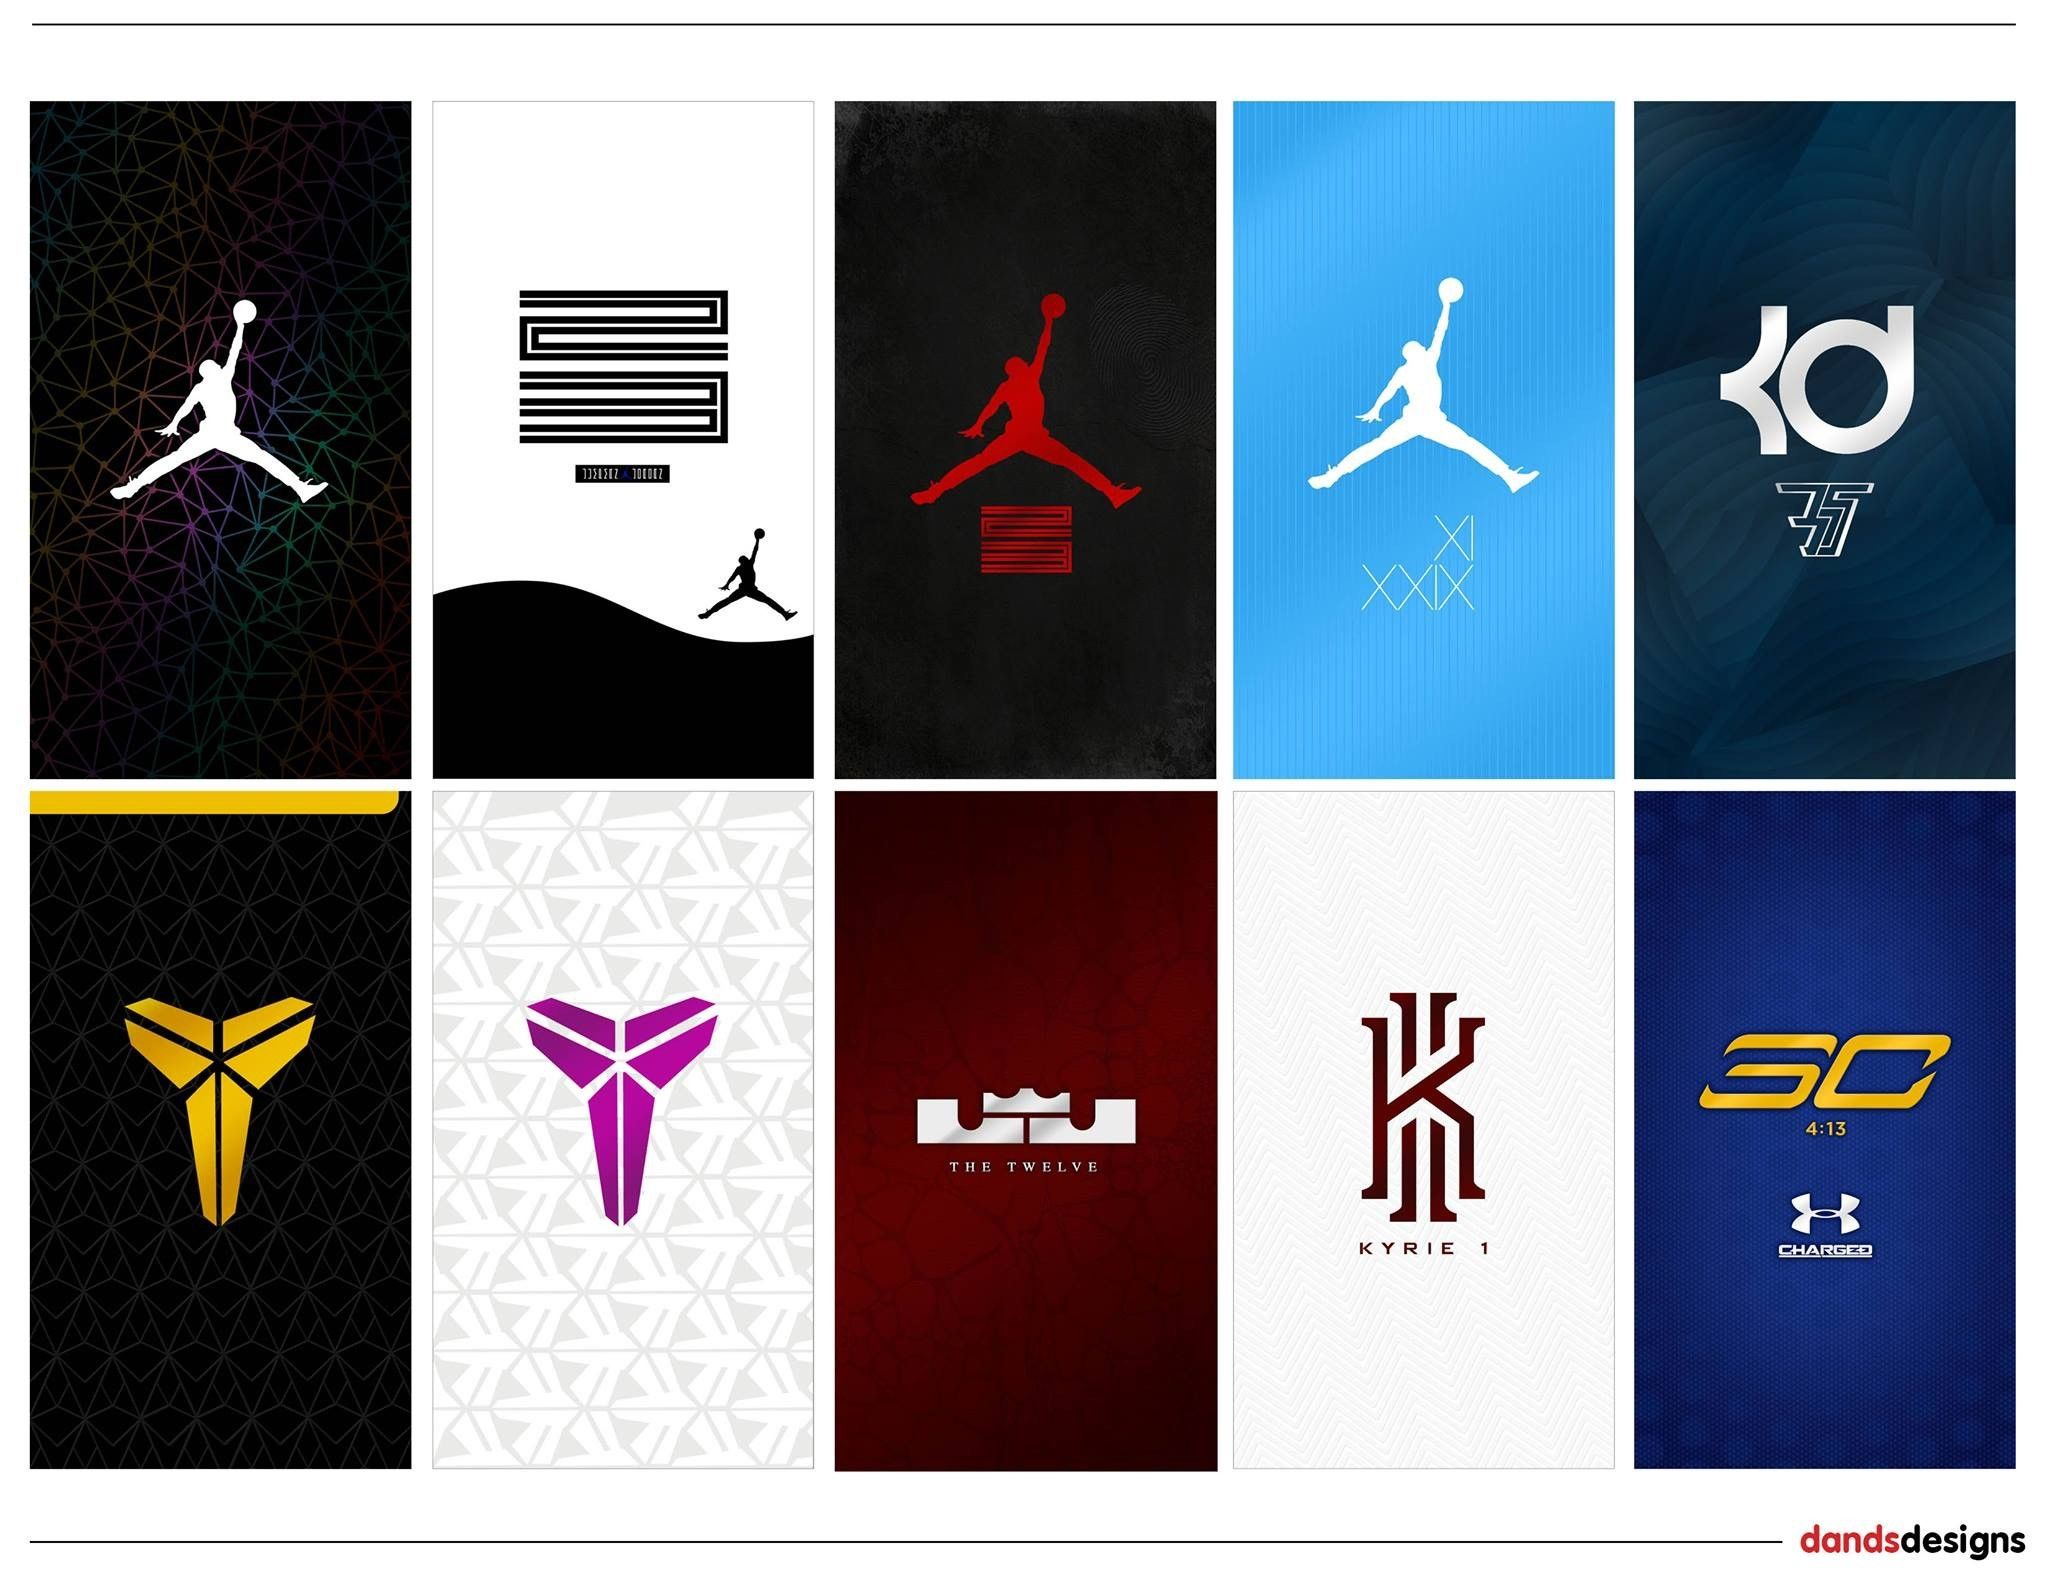 2048x1582 Cool Mobile Wallpaper By Dandsdesigns At Facebook Dands Dave Cool Wallpaper Kyrie Irving Logo Wallpaper Mvp Basketball Irving Wallpapers